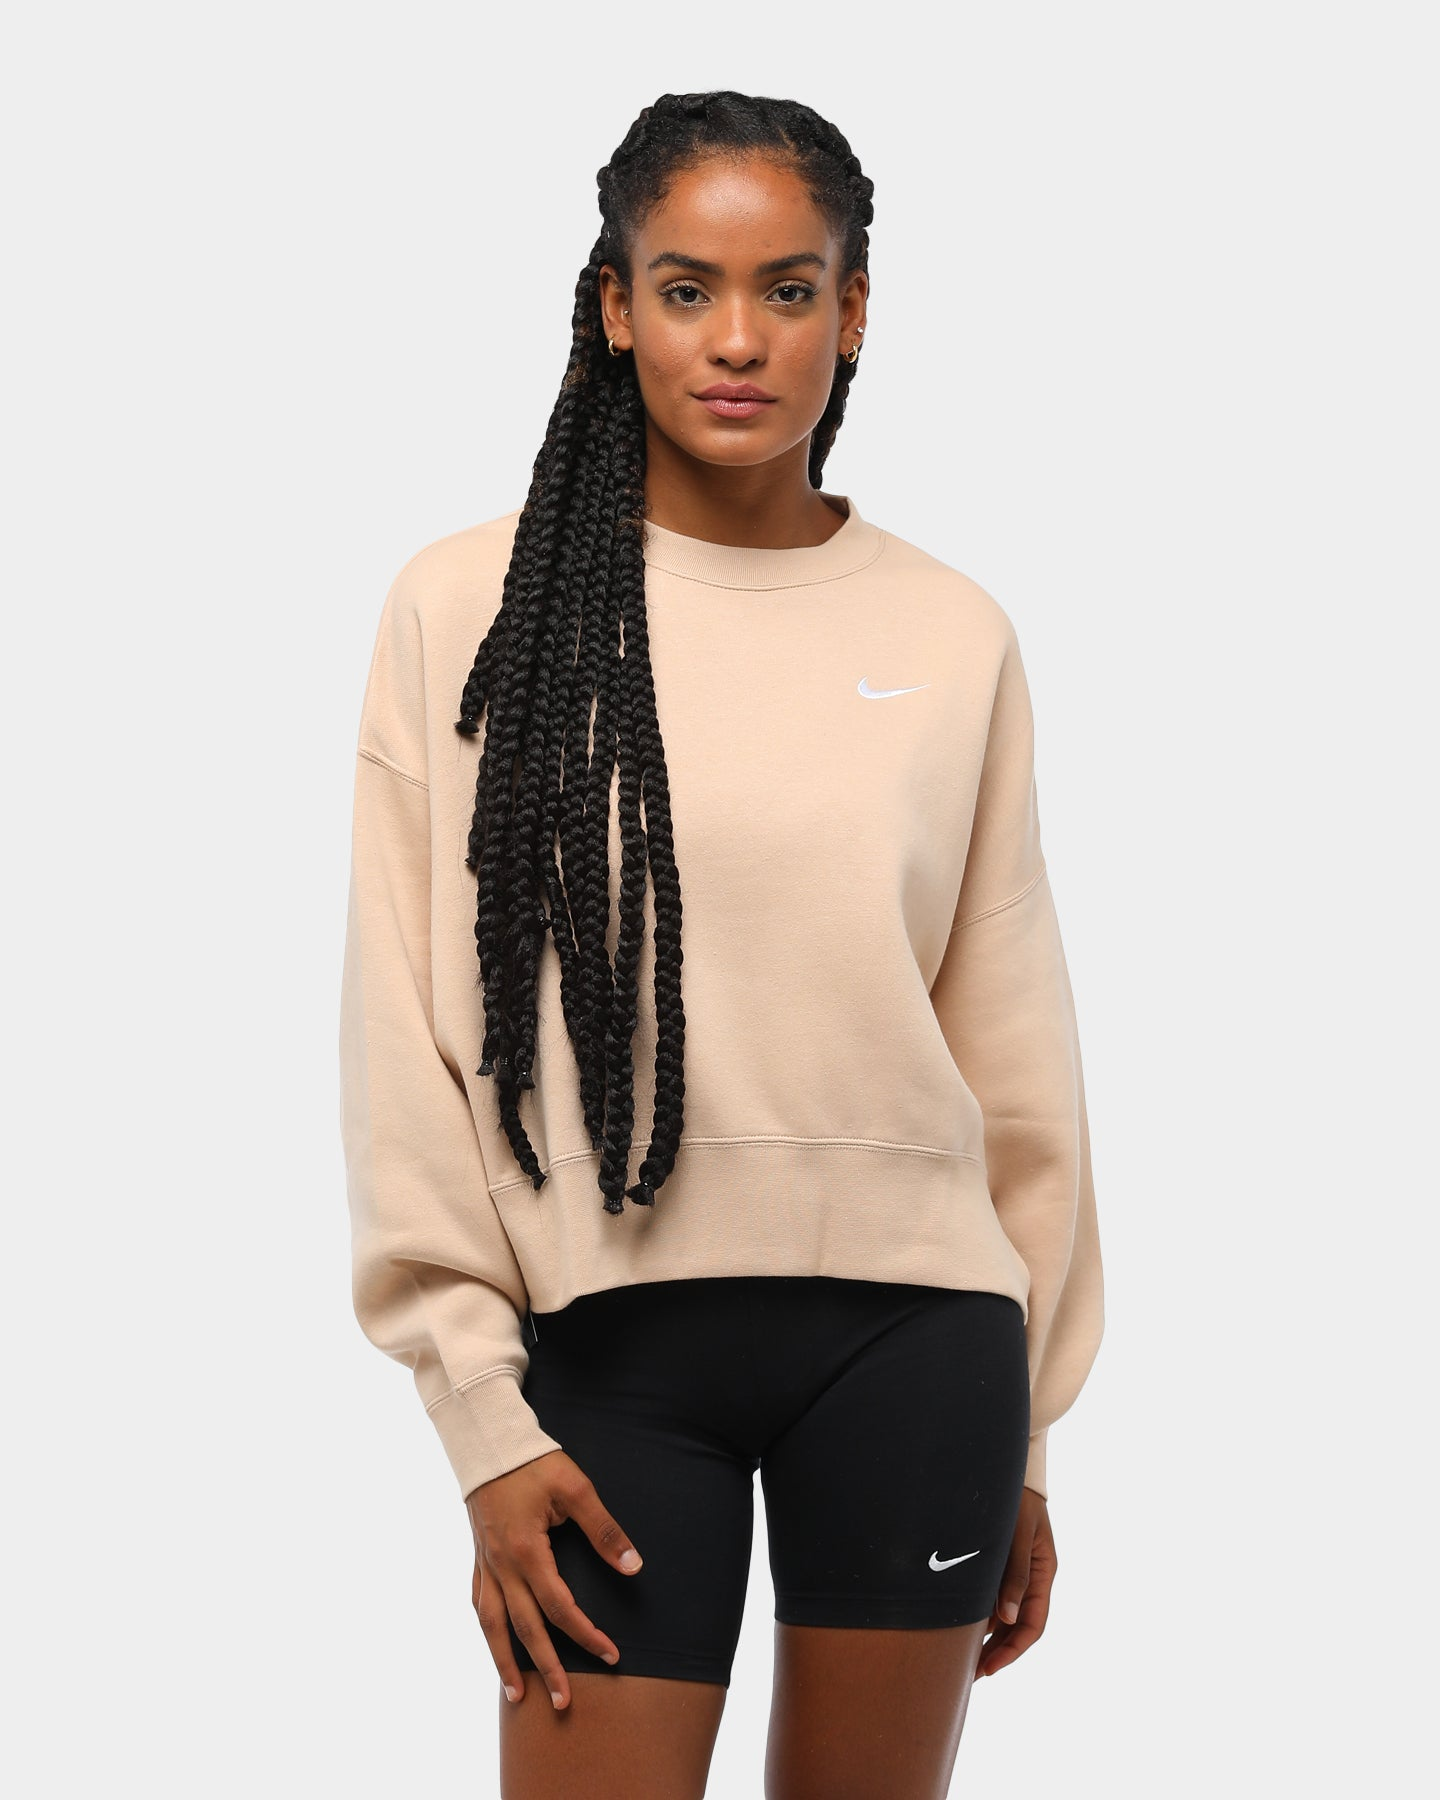 Nike Women Clothing Great Collections Holiday Sale Up To